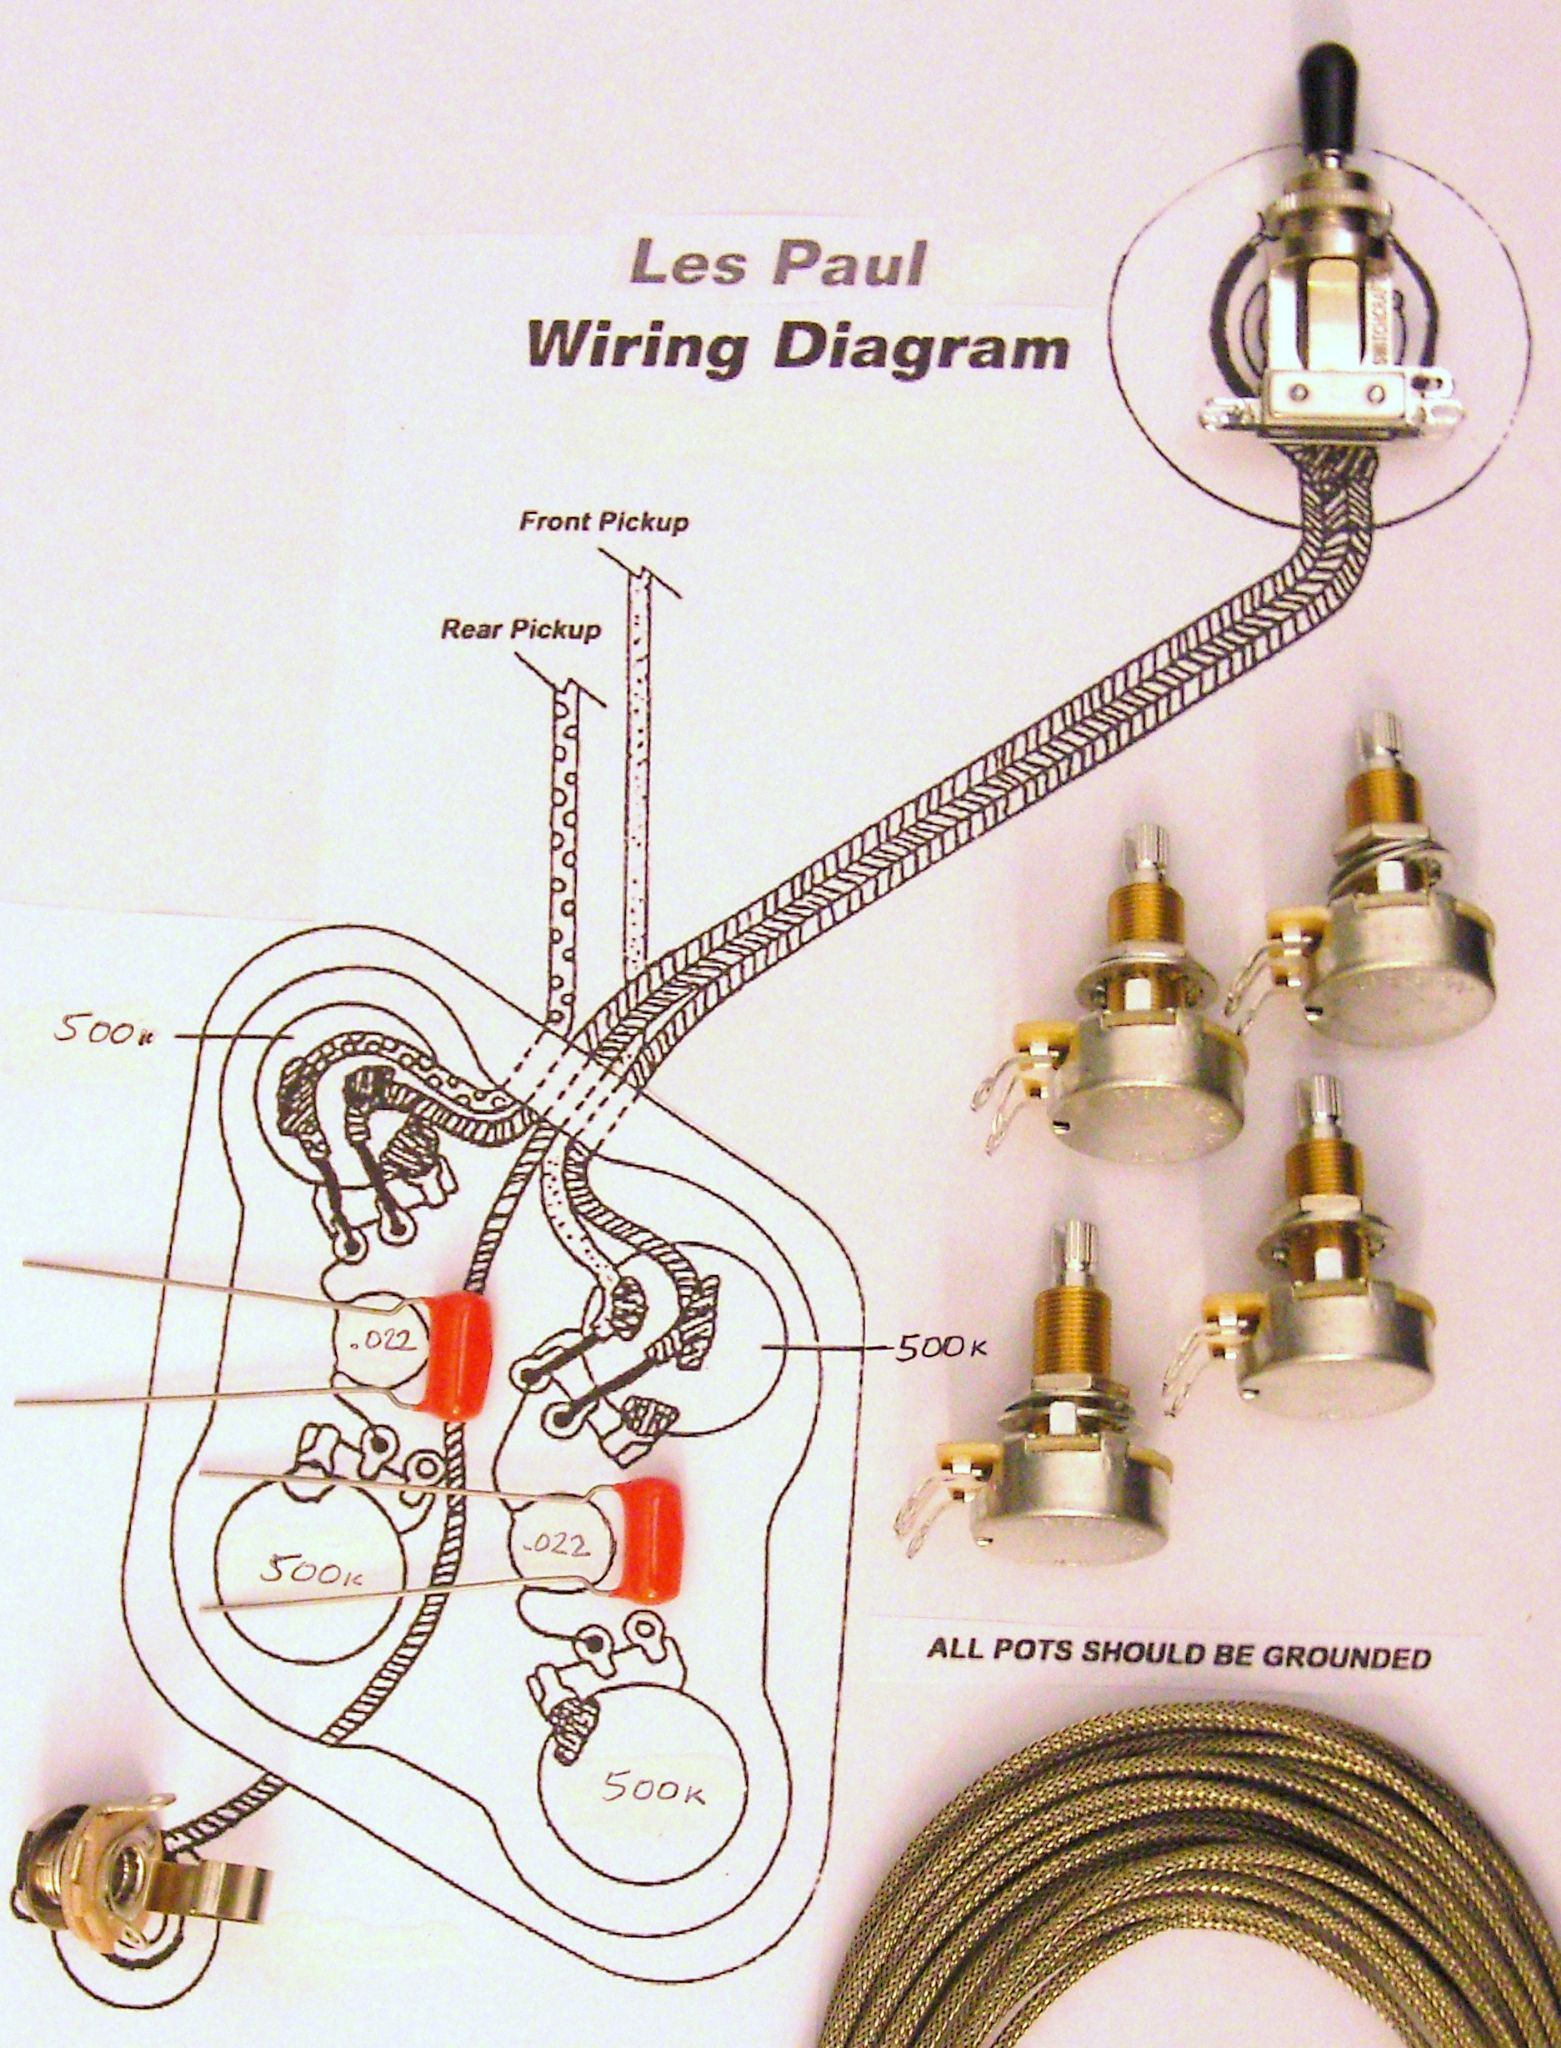 Switchcraft 3 Way Toggle Guitar Switch Wiring Diagram Exclusive How To Install Prong Kit For Les Paul Requiring Long Shaft Pots 5